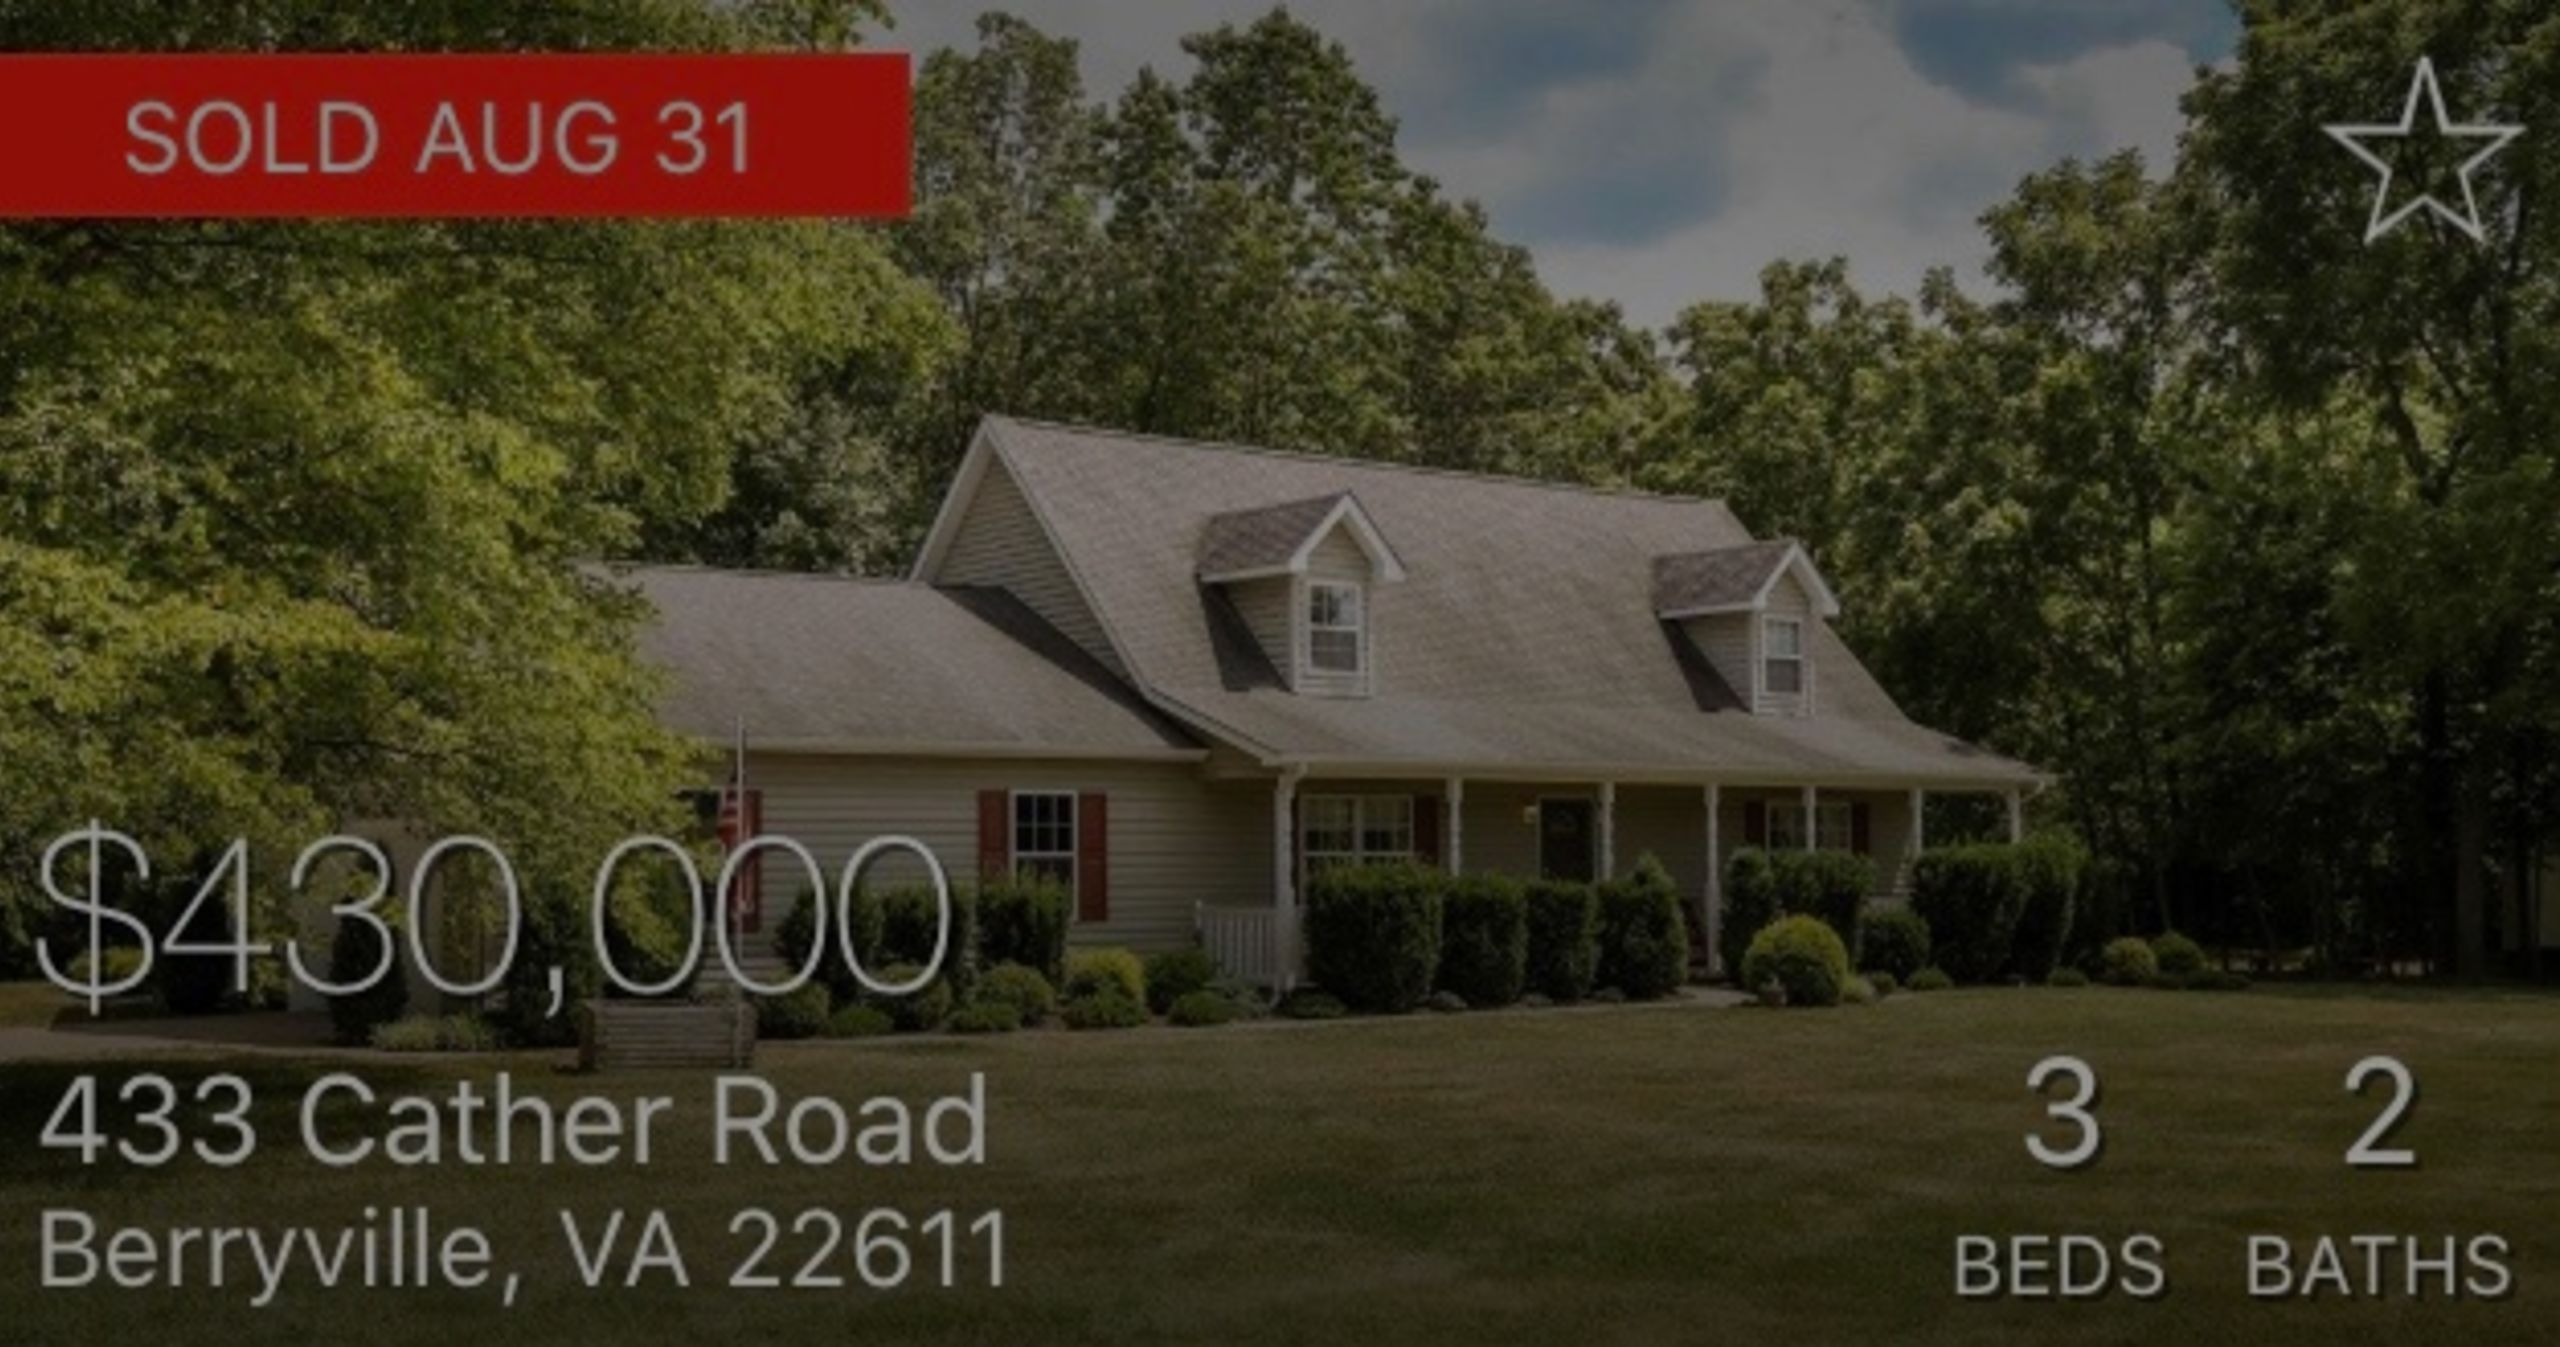 SOLD | 433 Cather Rd, Berryville, VA